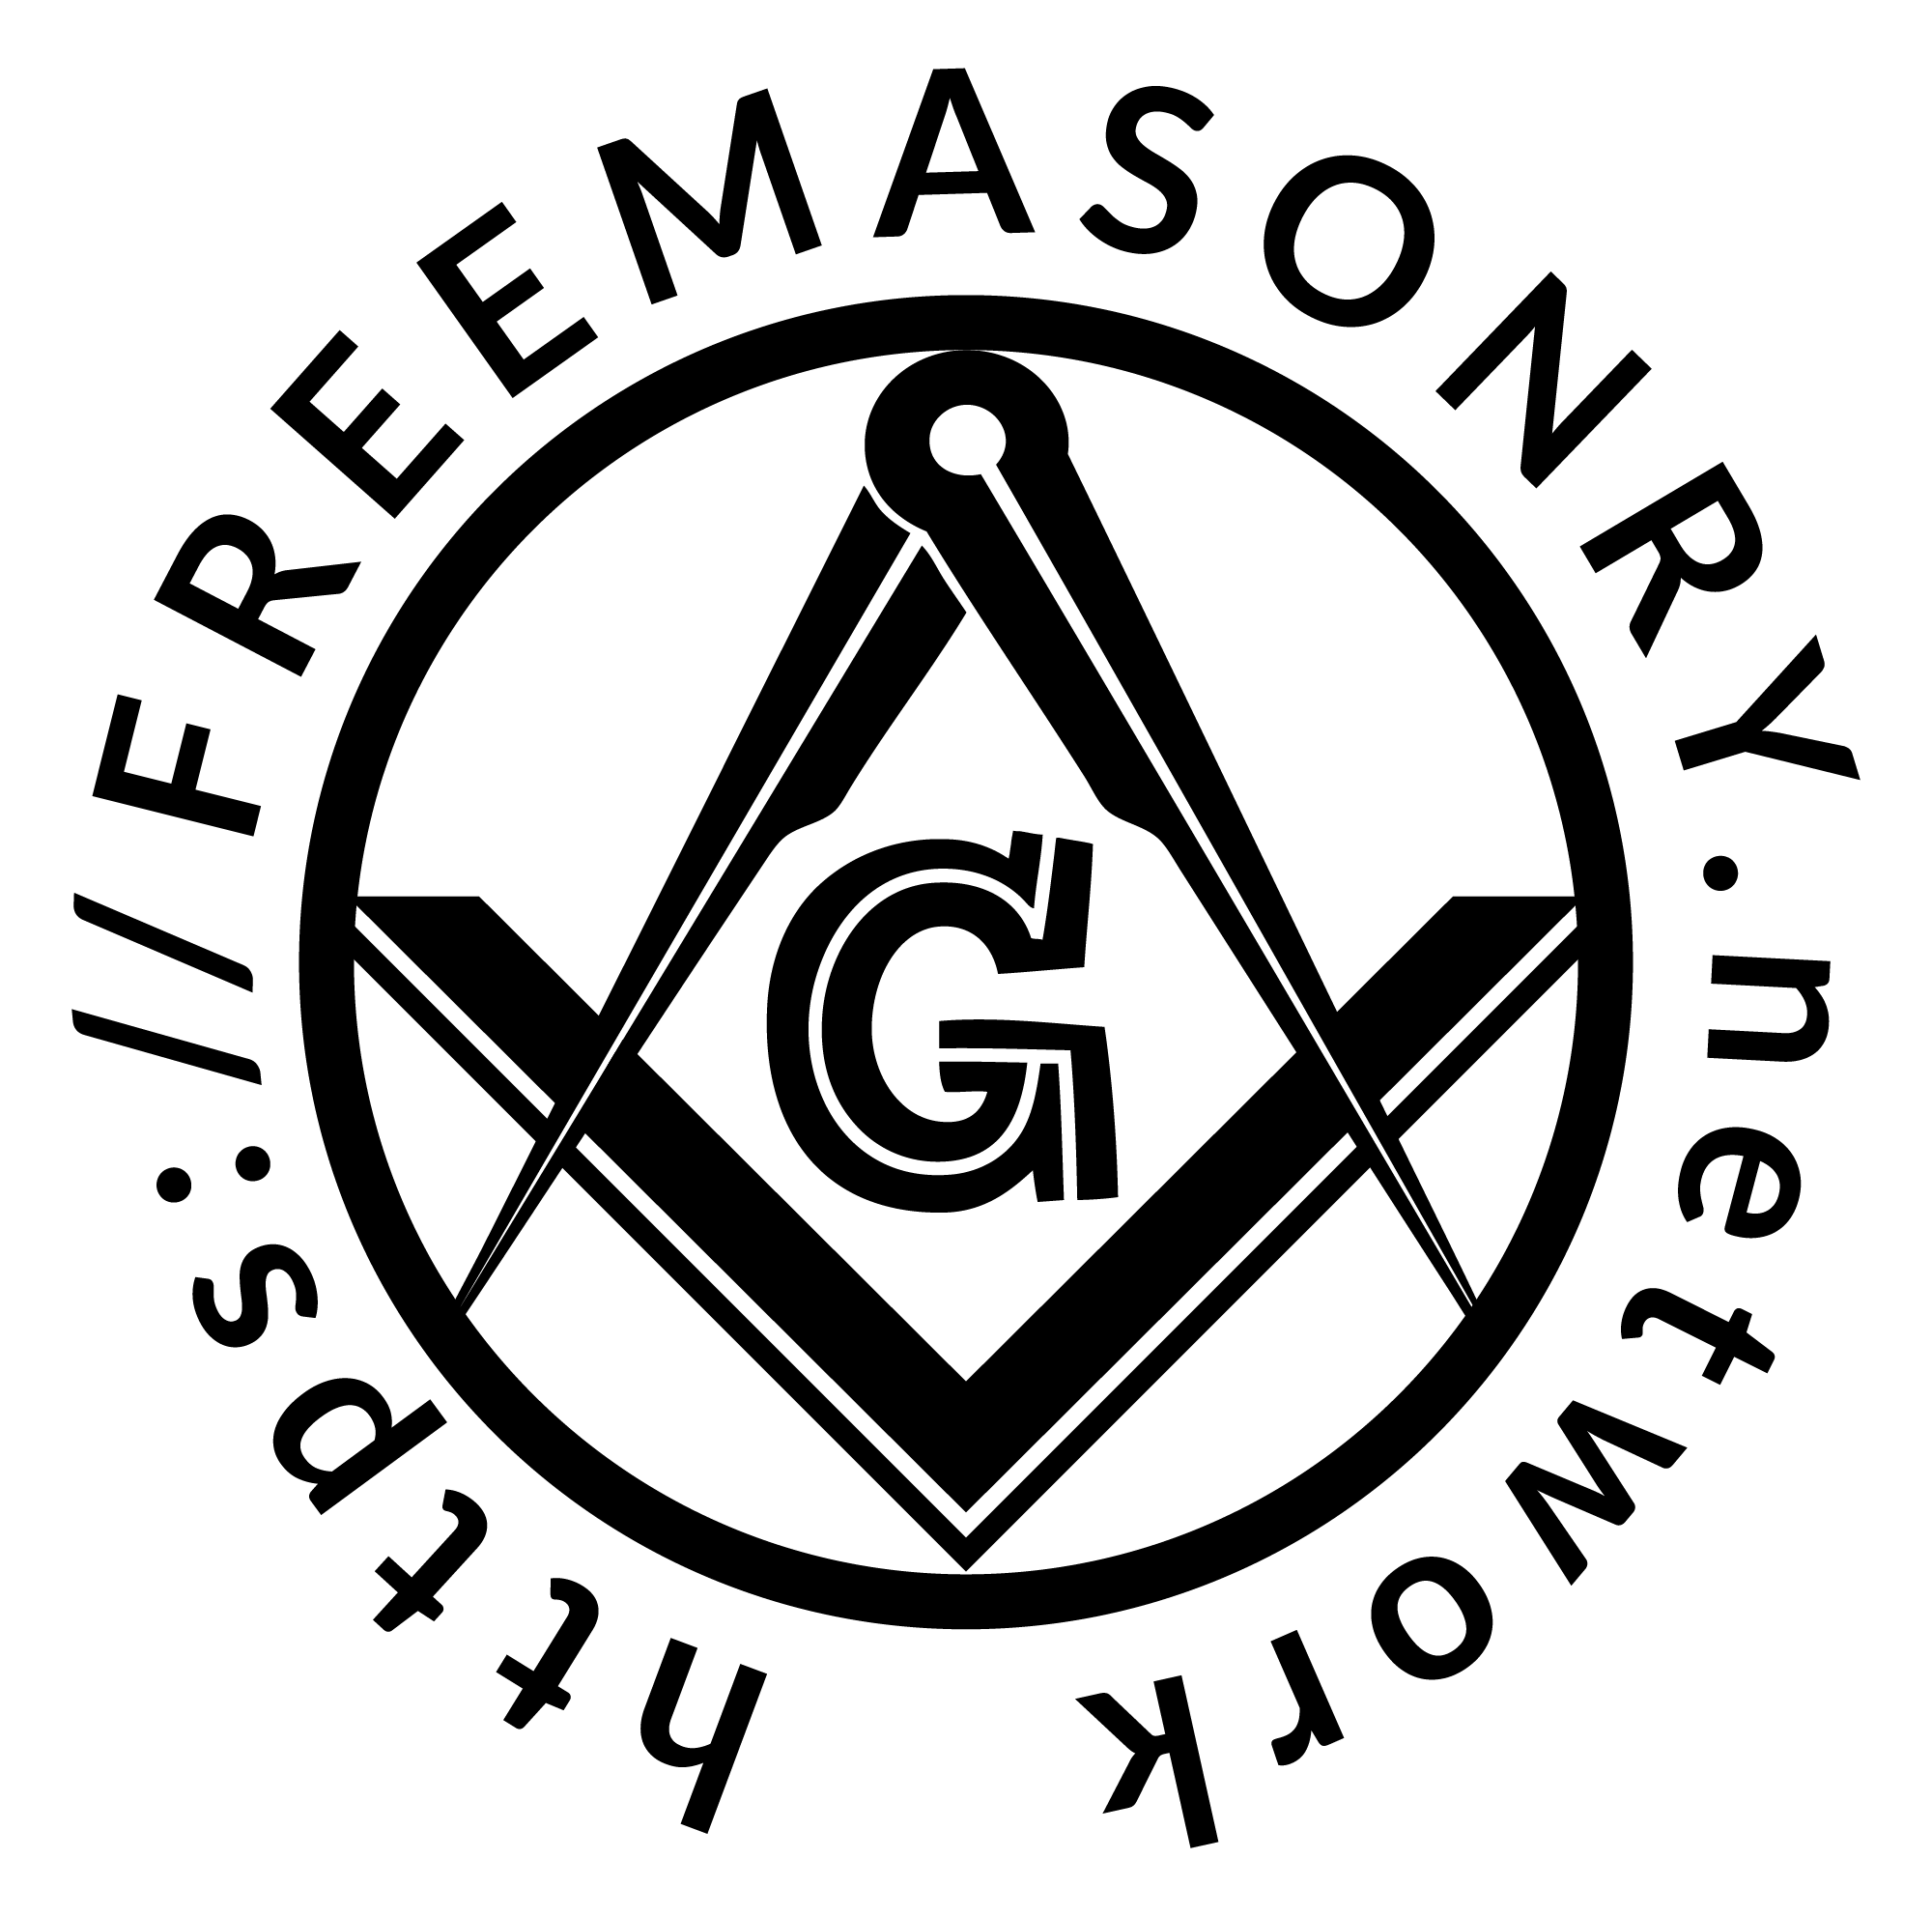 MASONIC CAR EMBLEMS GALLERY